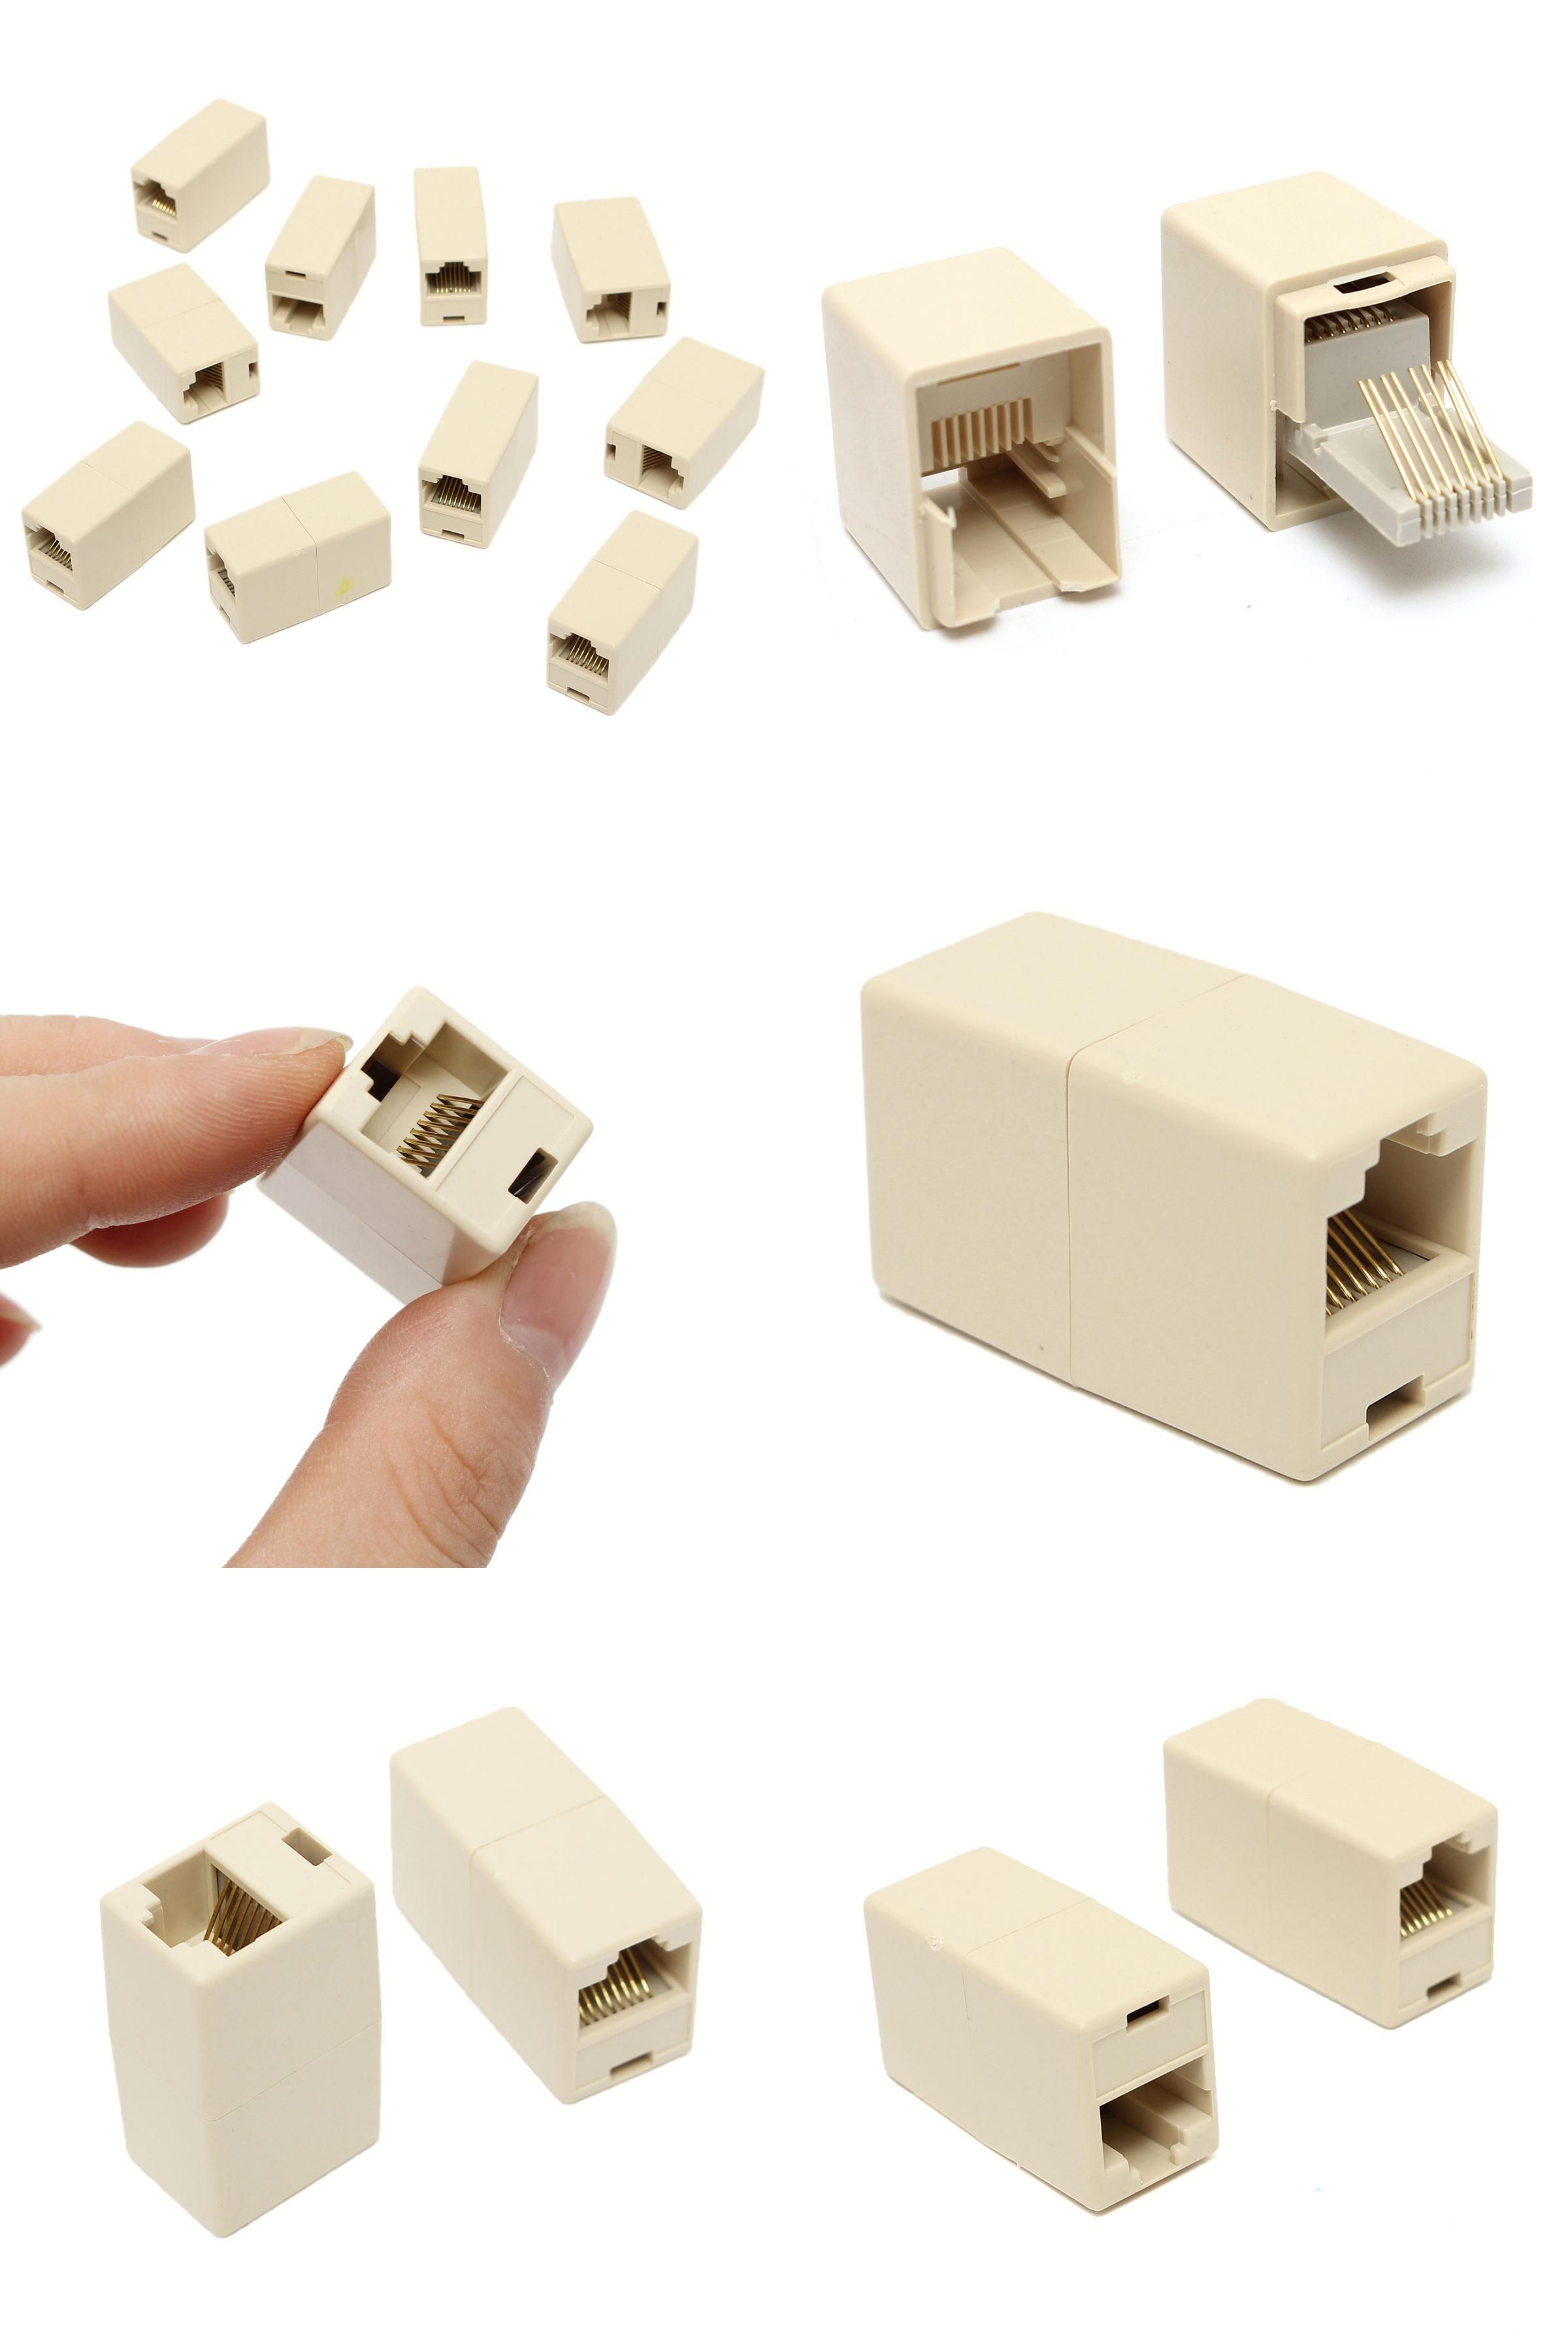 Visit To Buy Popular 10pcs Rj45 Cat5e Straight Network Cable Ethernet Lan Coupler Joiner Female To Female Connecto Network Cable Network Tools Rj45